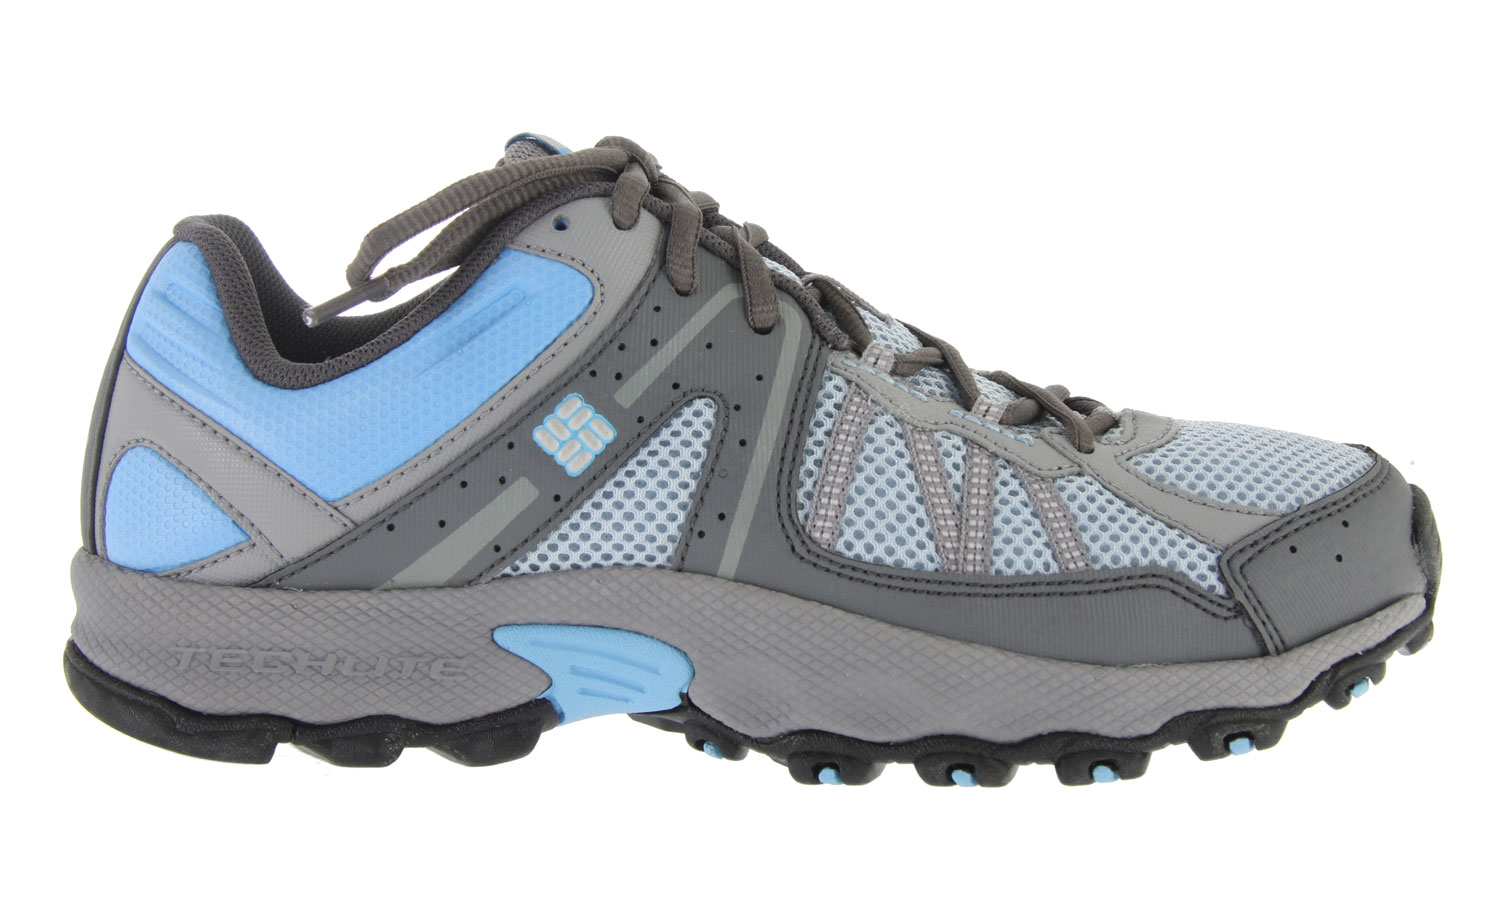 Camp and Hike Slip into the Switchback Low Hiking Shoe for low-profile support that looks as good on the street as it does on the single-track. Columbia's revolutionary new Techlite heel moves dense stabilizing elements to the outside (putting softer material directly against your foot) to provide a cushioned and conforming fit to alleviate pain and irritation where trail runners told us they felt it most. Omni-Grip traction on the rubber sole grips rocks, dirt, mud and just about anything else you encounter on off-road adventures. Breathable mesh and a soft material in the flex zones mean superior comfort with great agility and ease of movement. The gusseted tongue keeps out rocks, sticks, and dirt while light, sinewy overlays offer additional protection without adding unnecessary bulk. Key Features of the Columbia Switchback Low Hiking Shoes: Open breathable mesh tongue and vamp Gusseted tongue to keep out unwanted debris Light and sinewy synthetic overlays for support and protection Contour Comfort 1D footbed with AgION anti-odor treatment Removable contoured, single-density EVA footbed, which provides cushioning, comfort and support Low profile Techlite midsole for nimble, flexible feel in a lightweight package Non-marking Omni-Grip rubber compound with a rugged trail design - $48.95